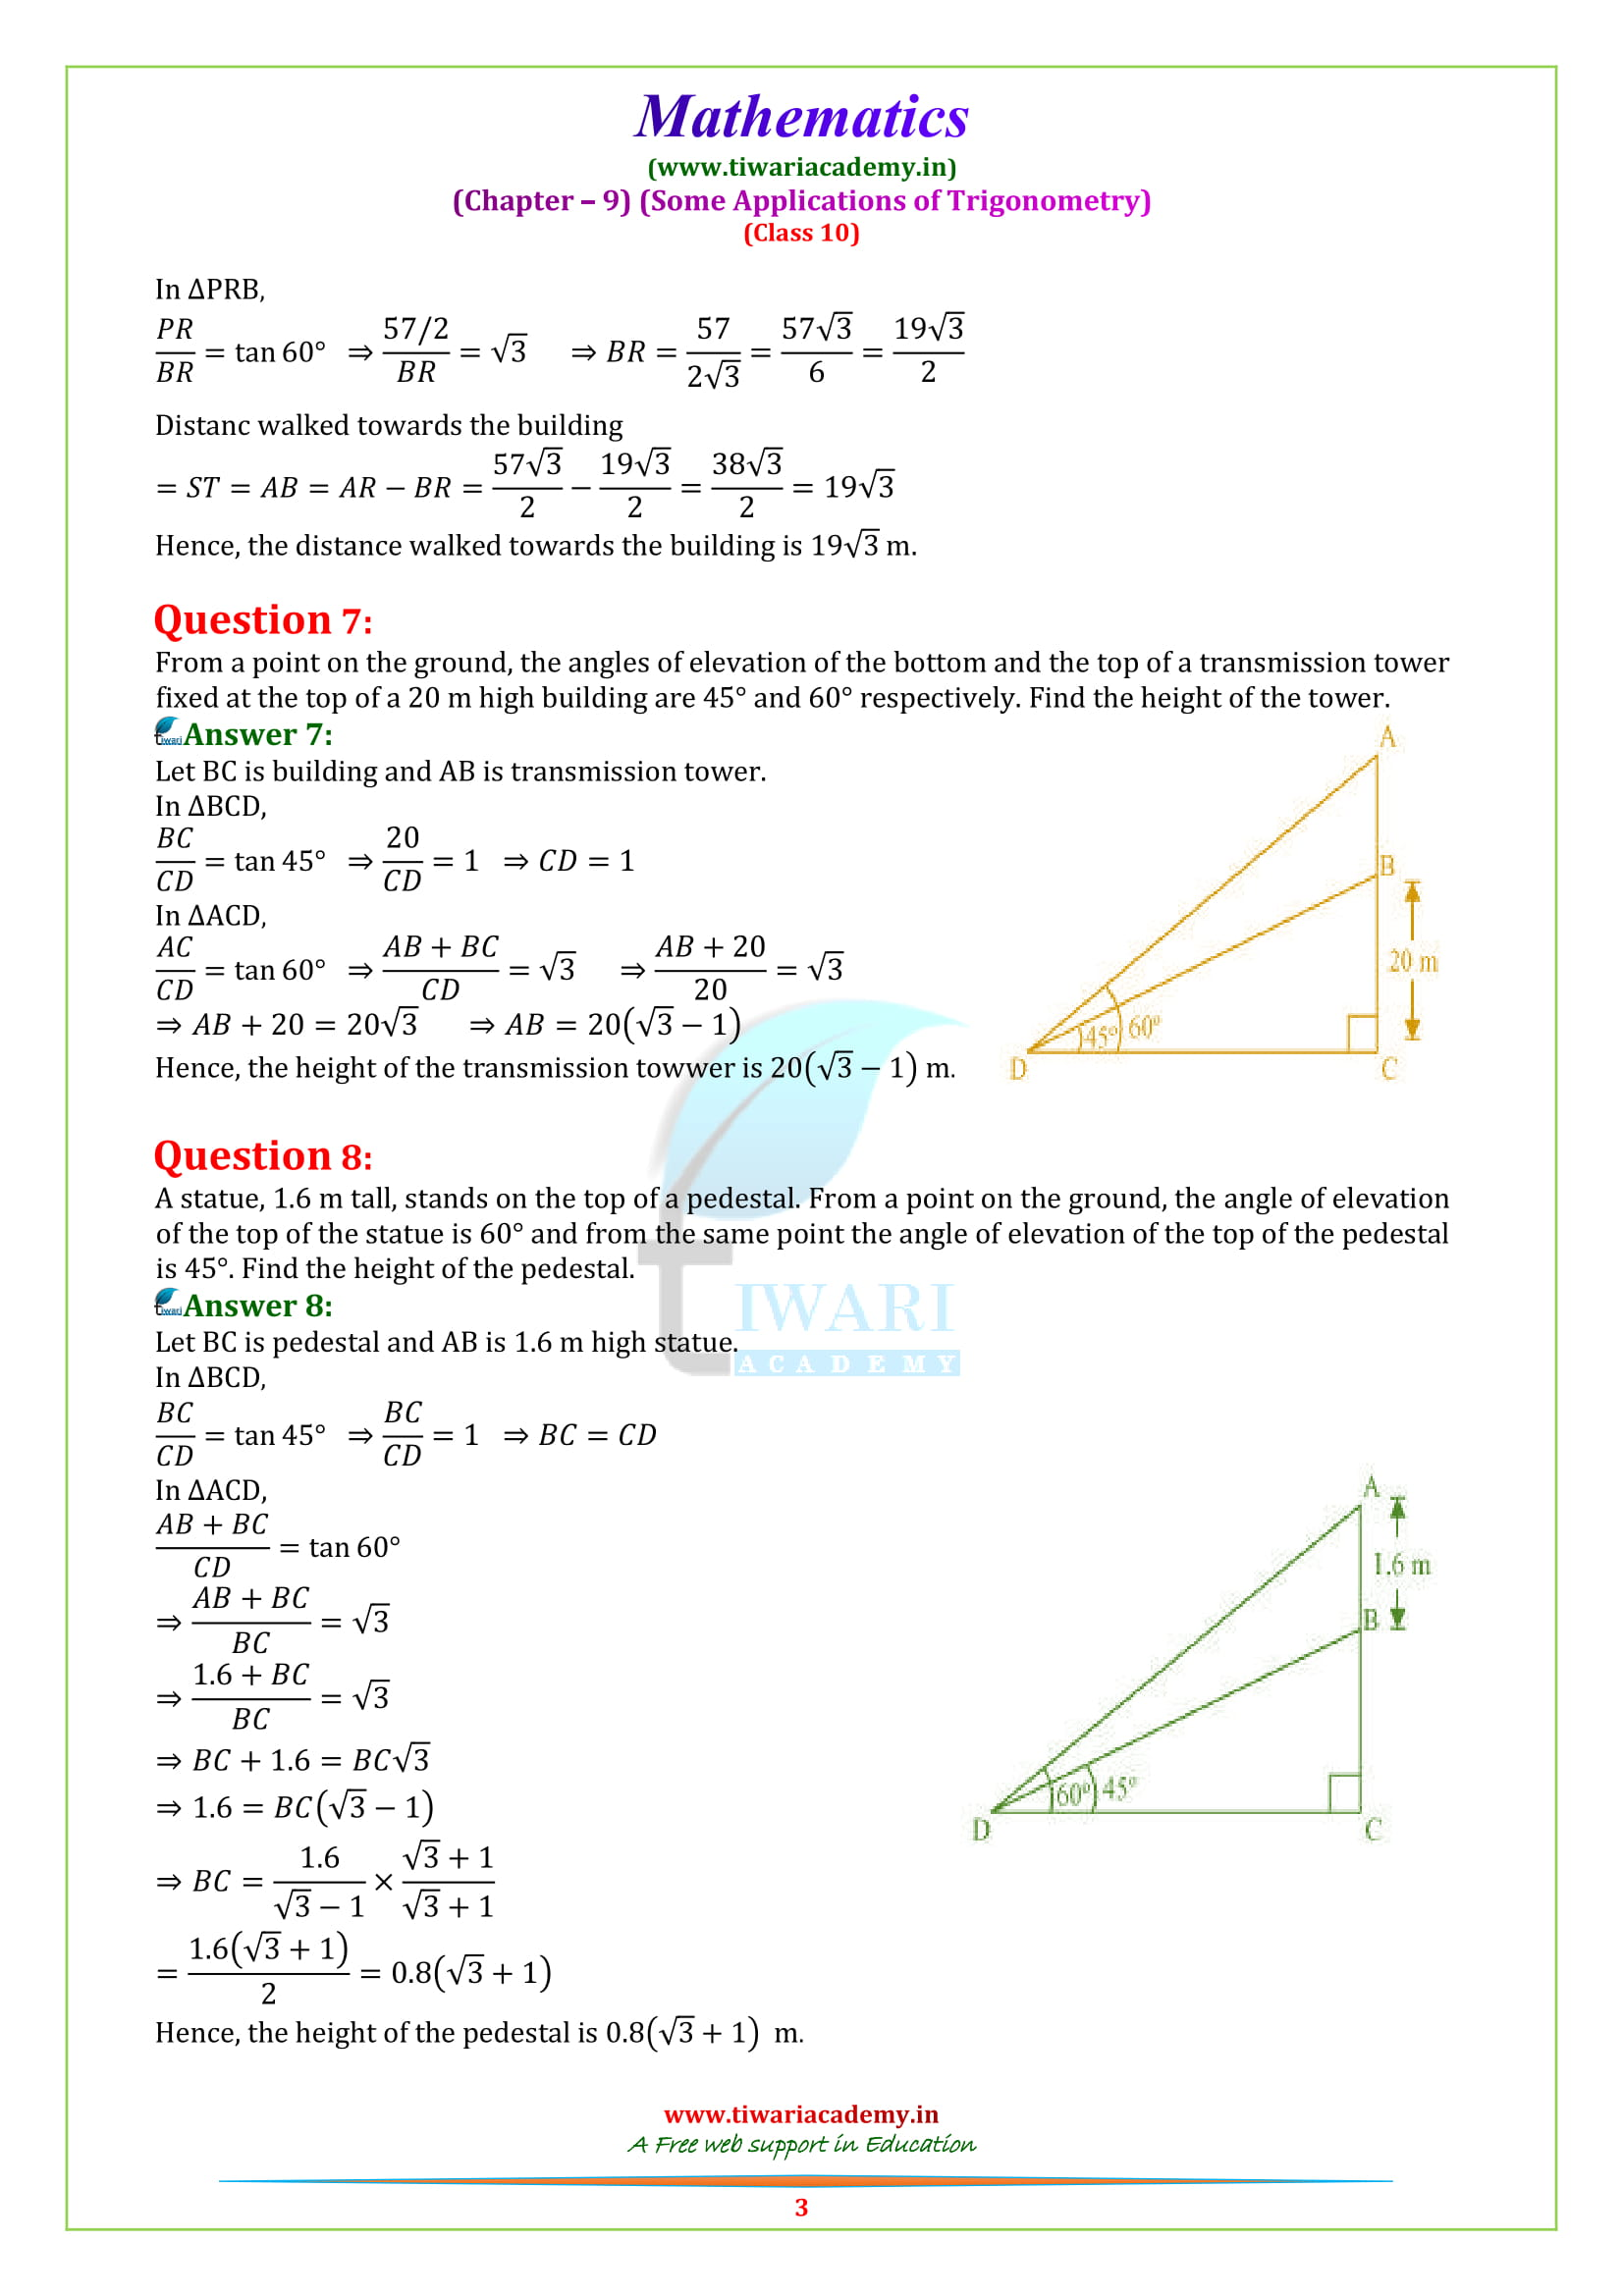 NCERT Solutions for class 10 Maths exercise 9.1 question 6, 7, 8